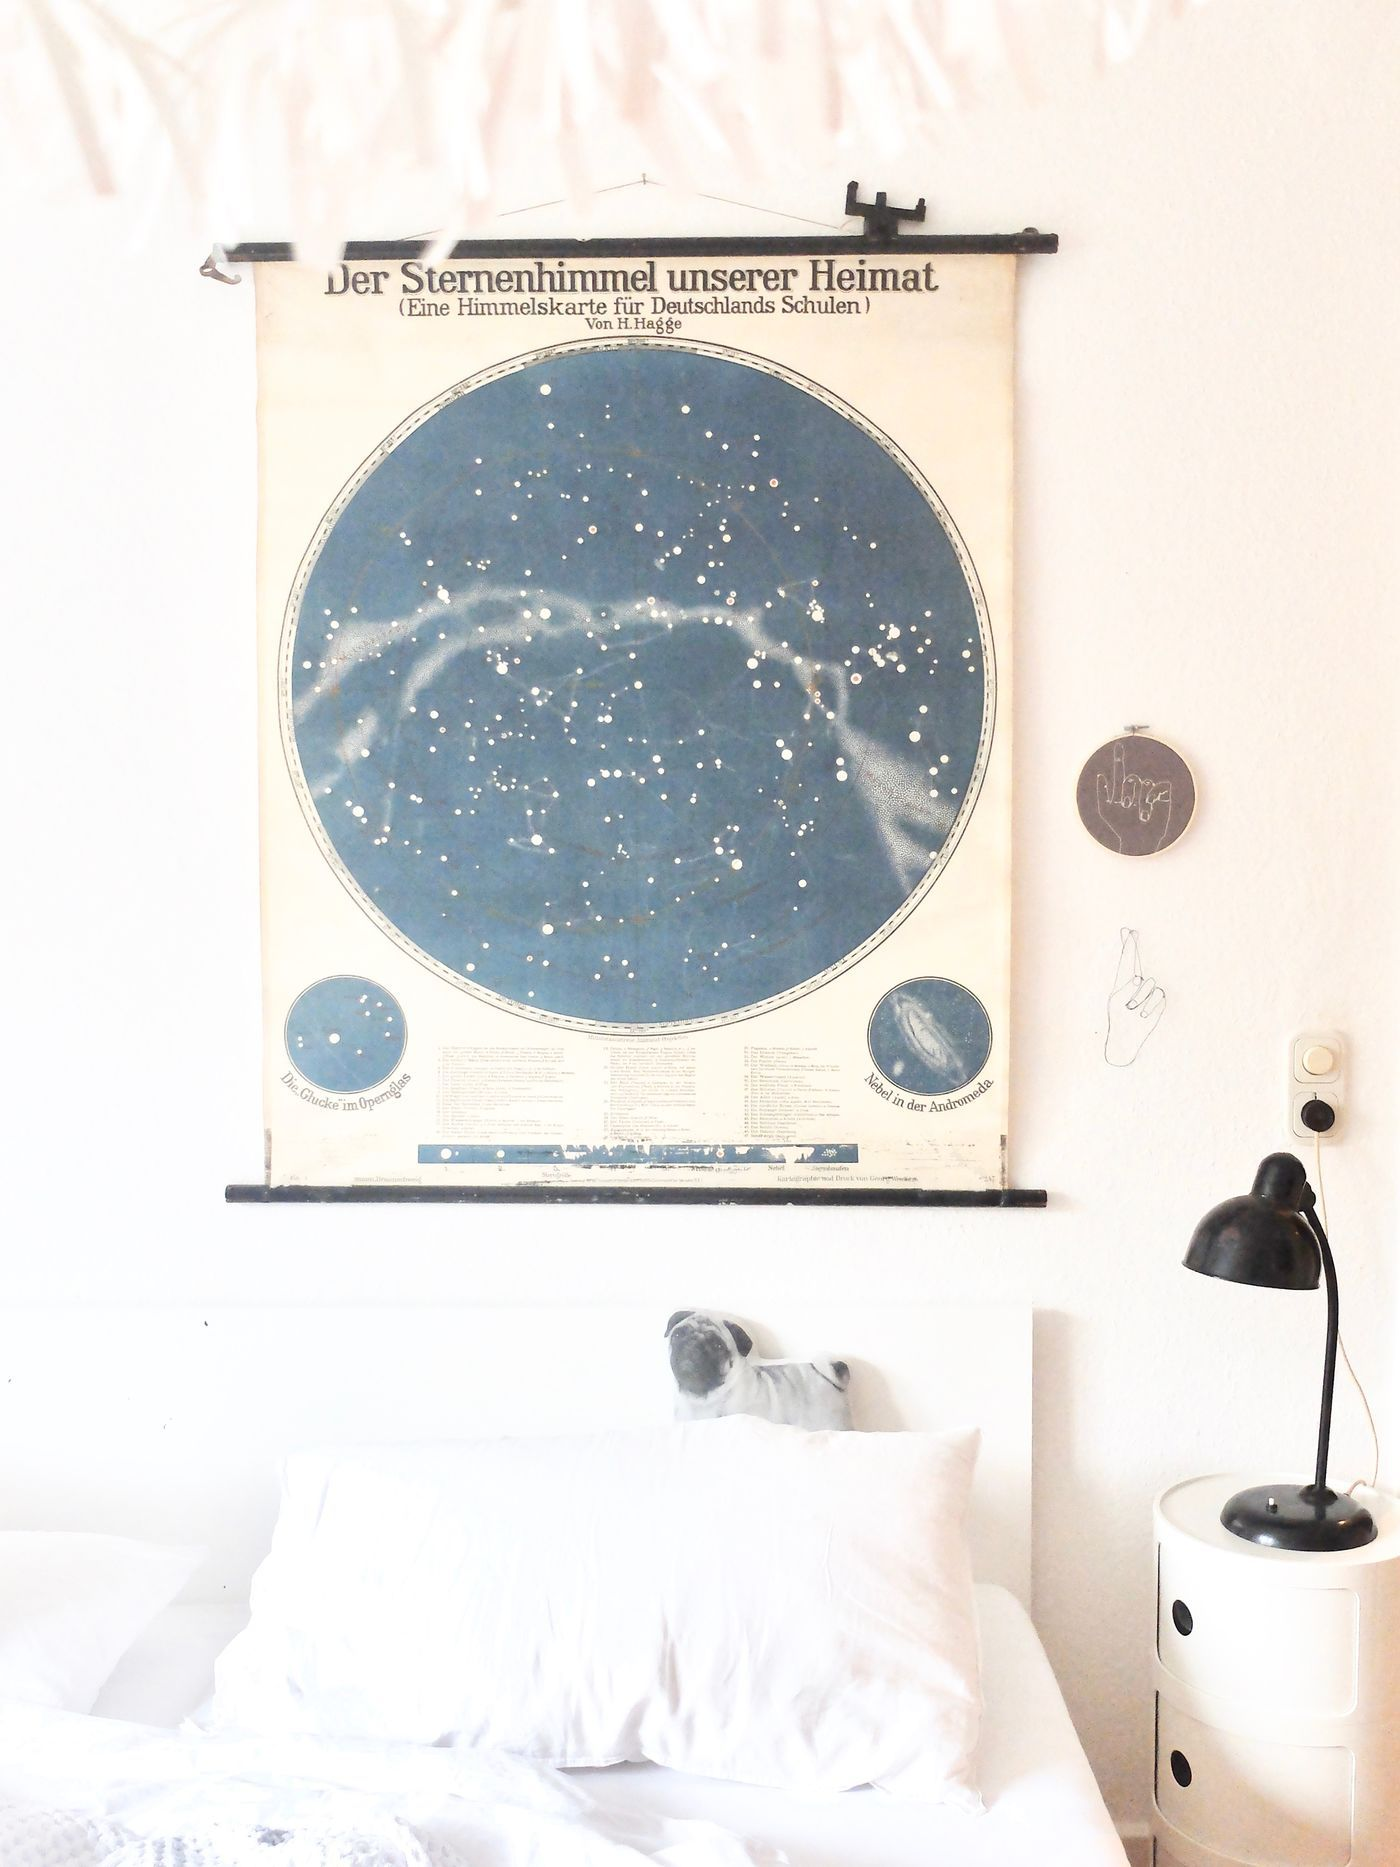 Fototapete Schlafzimmer Sternenhimmel Awesome Sternenhimmel Im Schlafzimmer Pics Hiketoframe